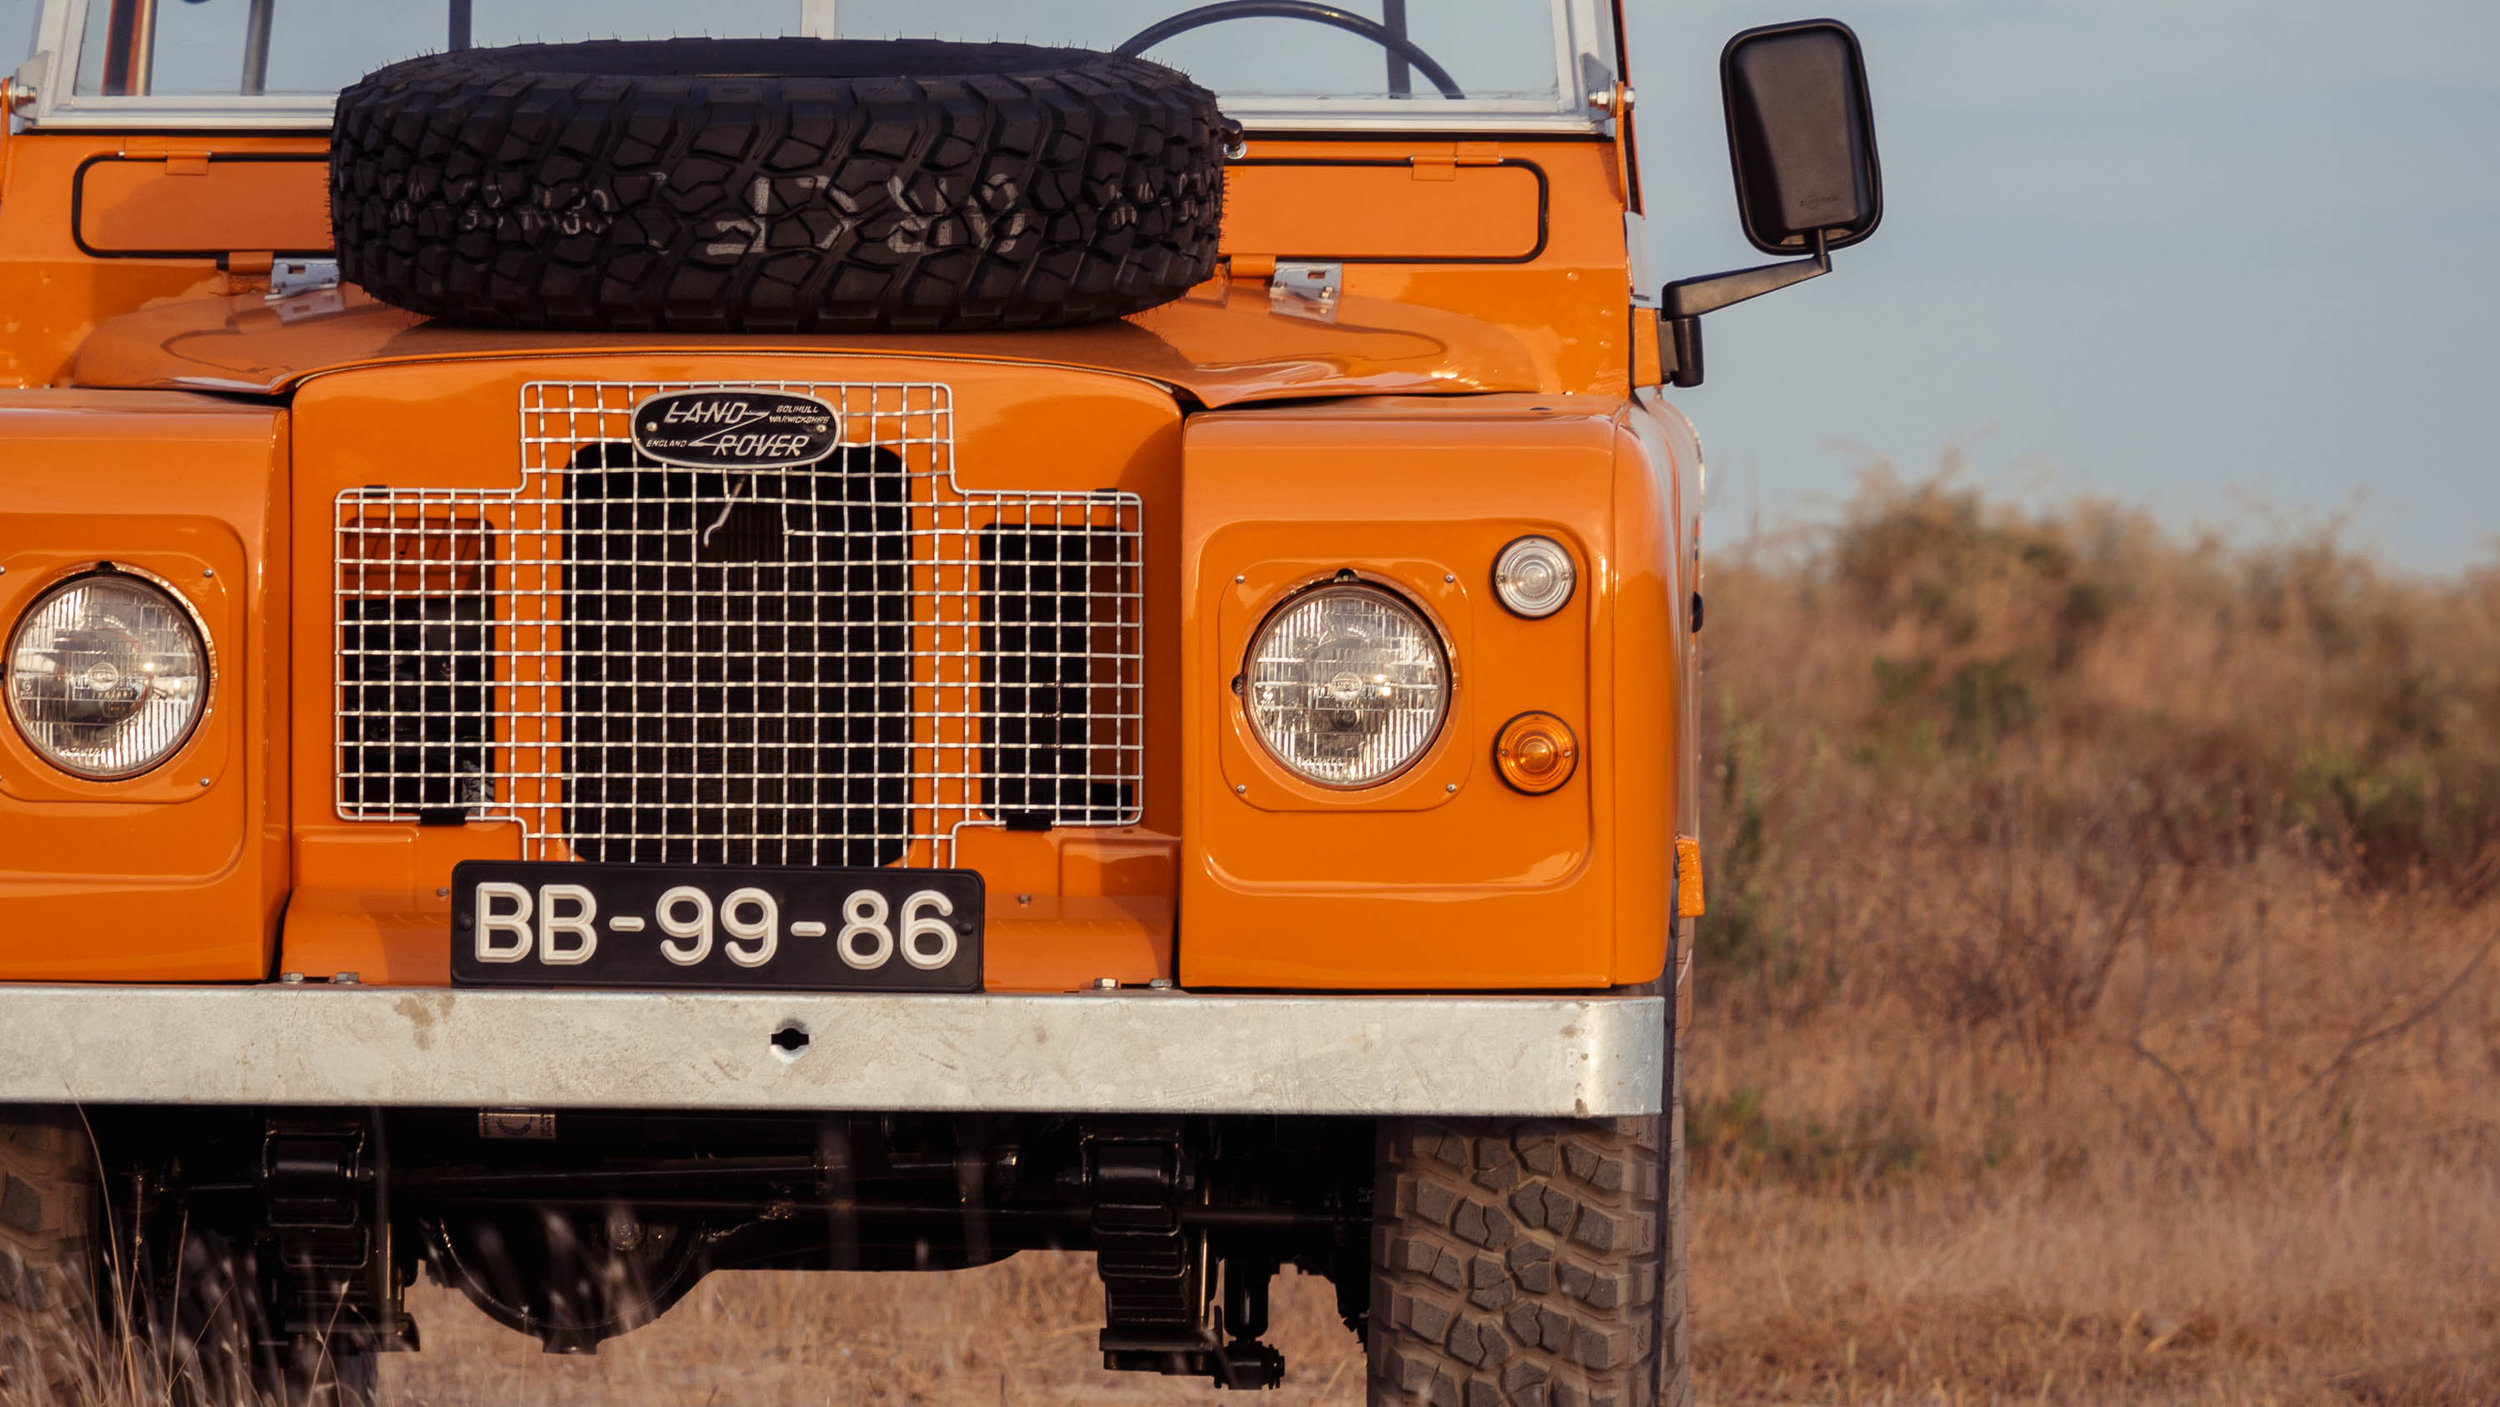 Coolnvintage Land Rover SIII (137 of 137).jpg